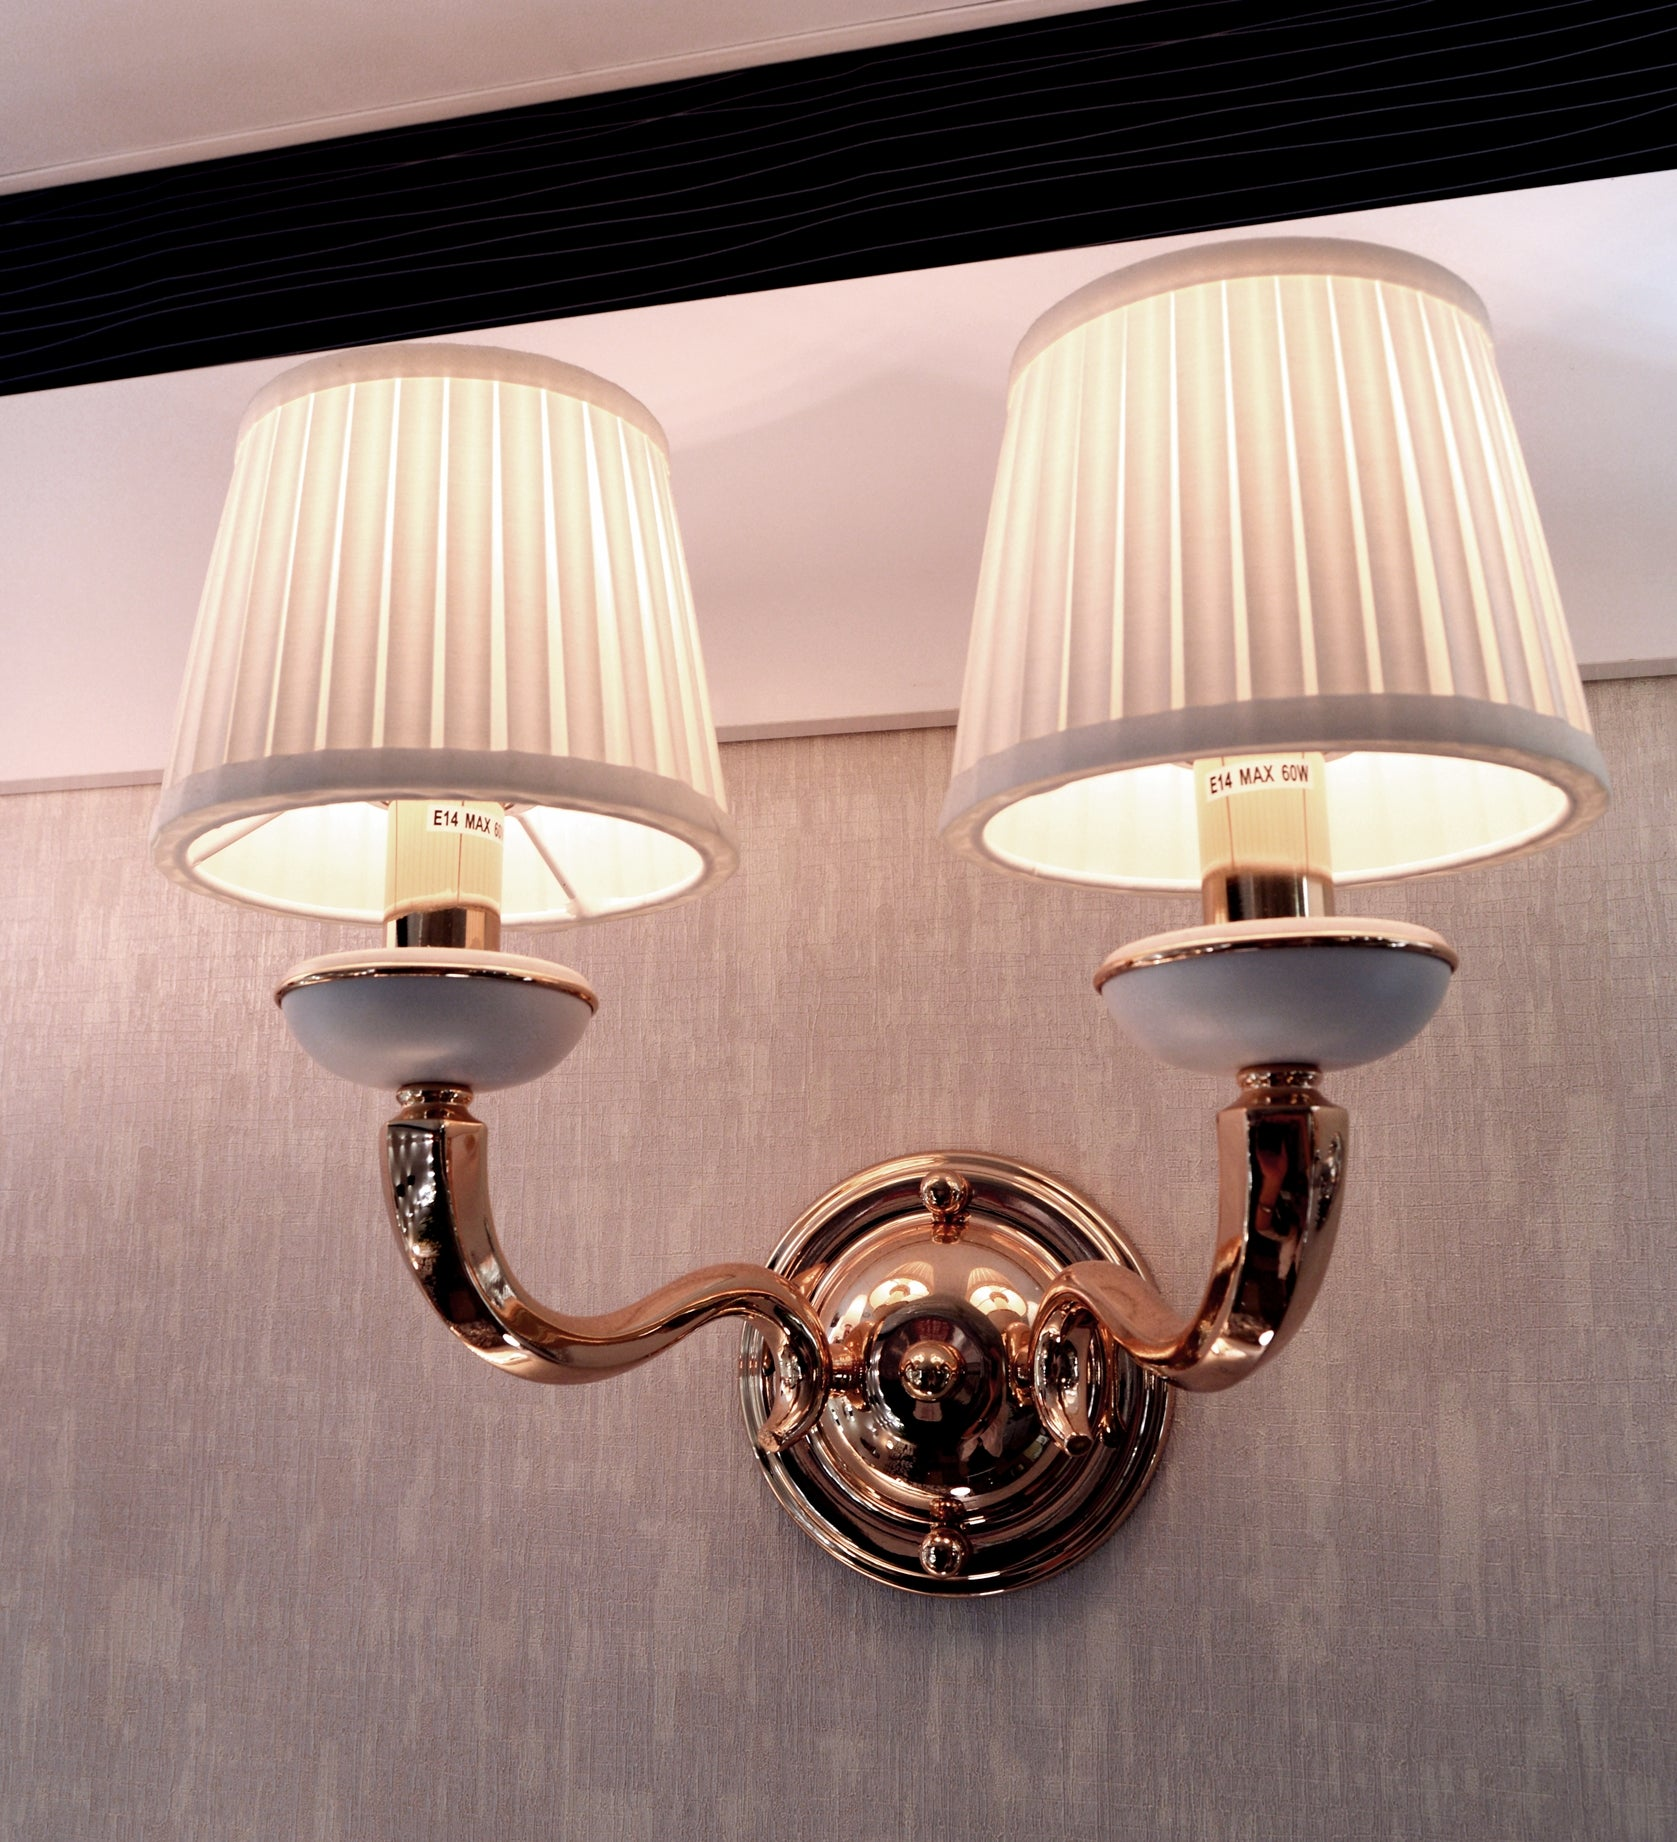 Wall-mounted Chandelier-looking Lighting (1)